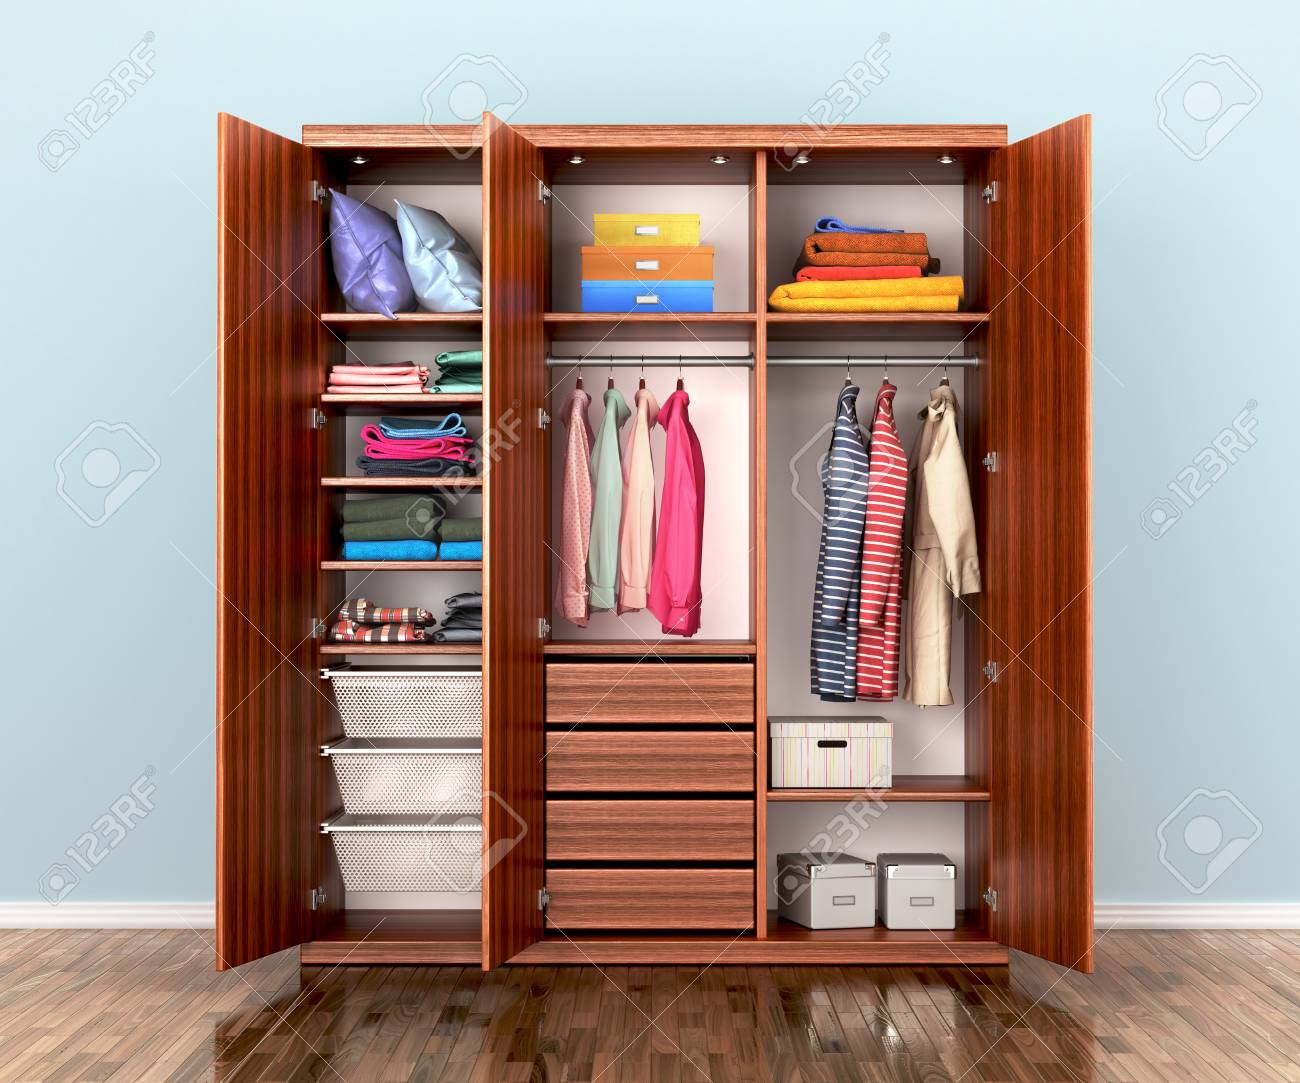 Open Wardrobe Compartment With Clothes 3d Illustrations Stock Photo